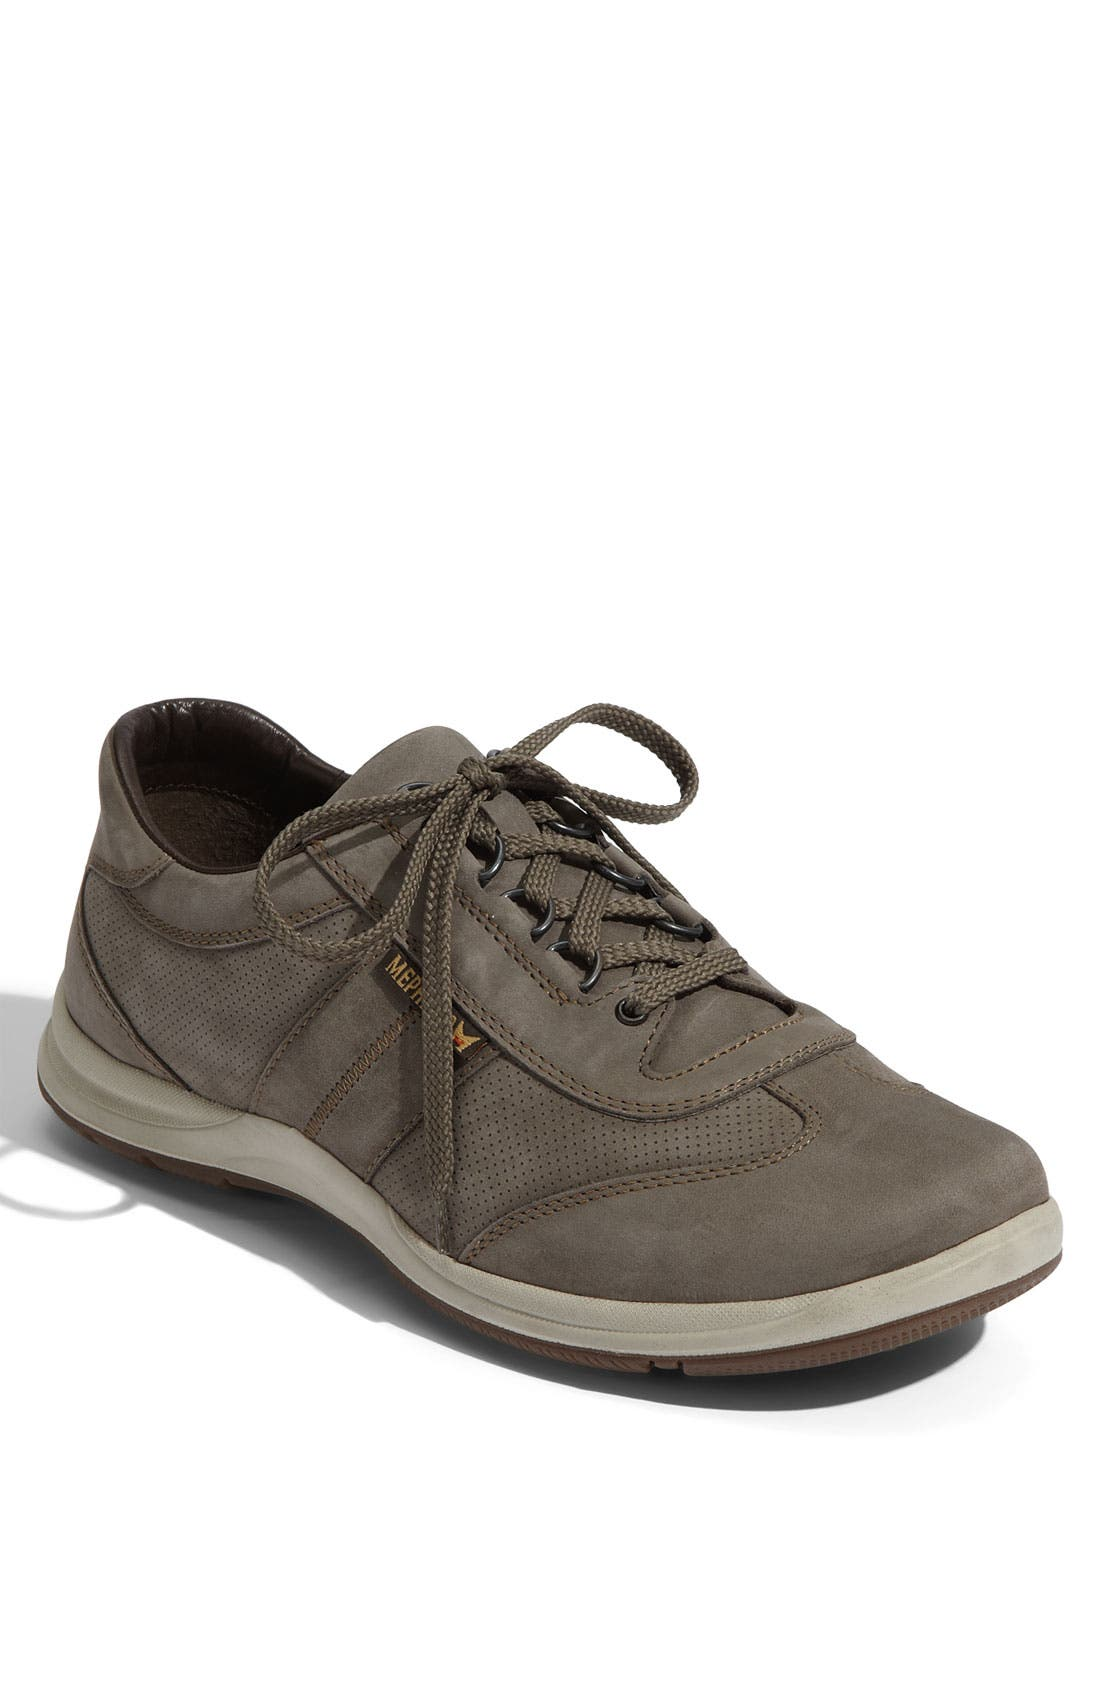 MEPHISTO 'Hike' Perforated Walking Shoe